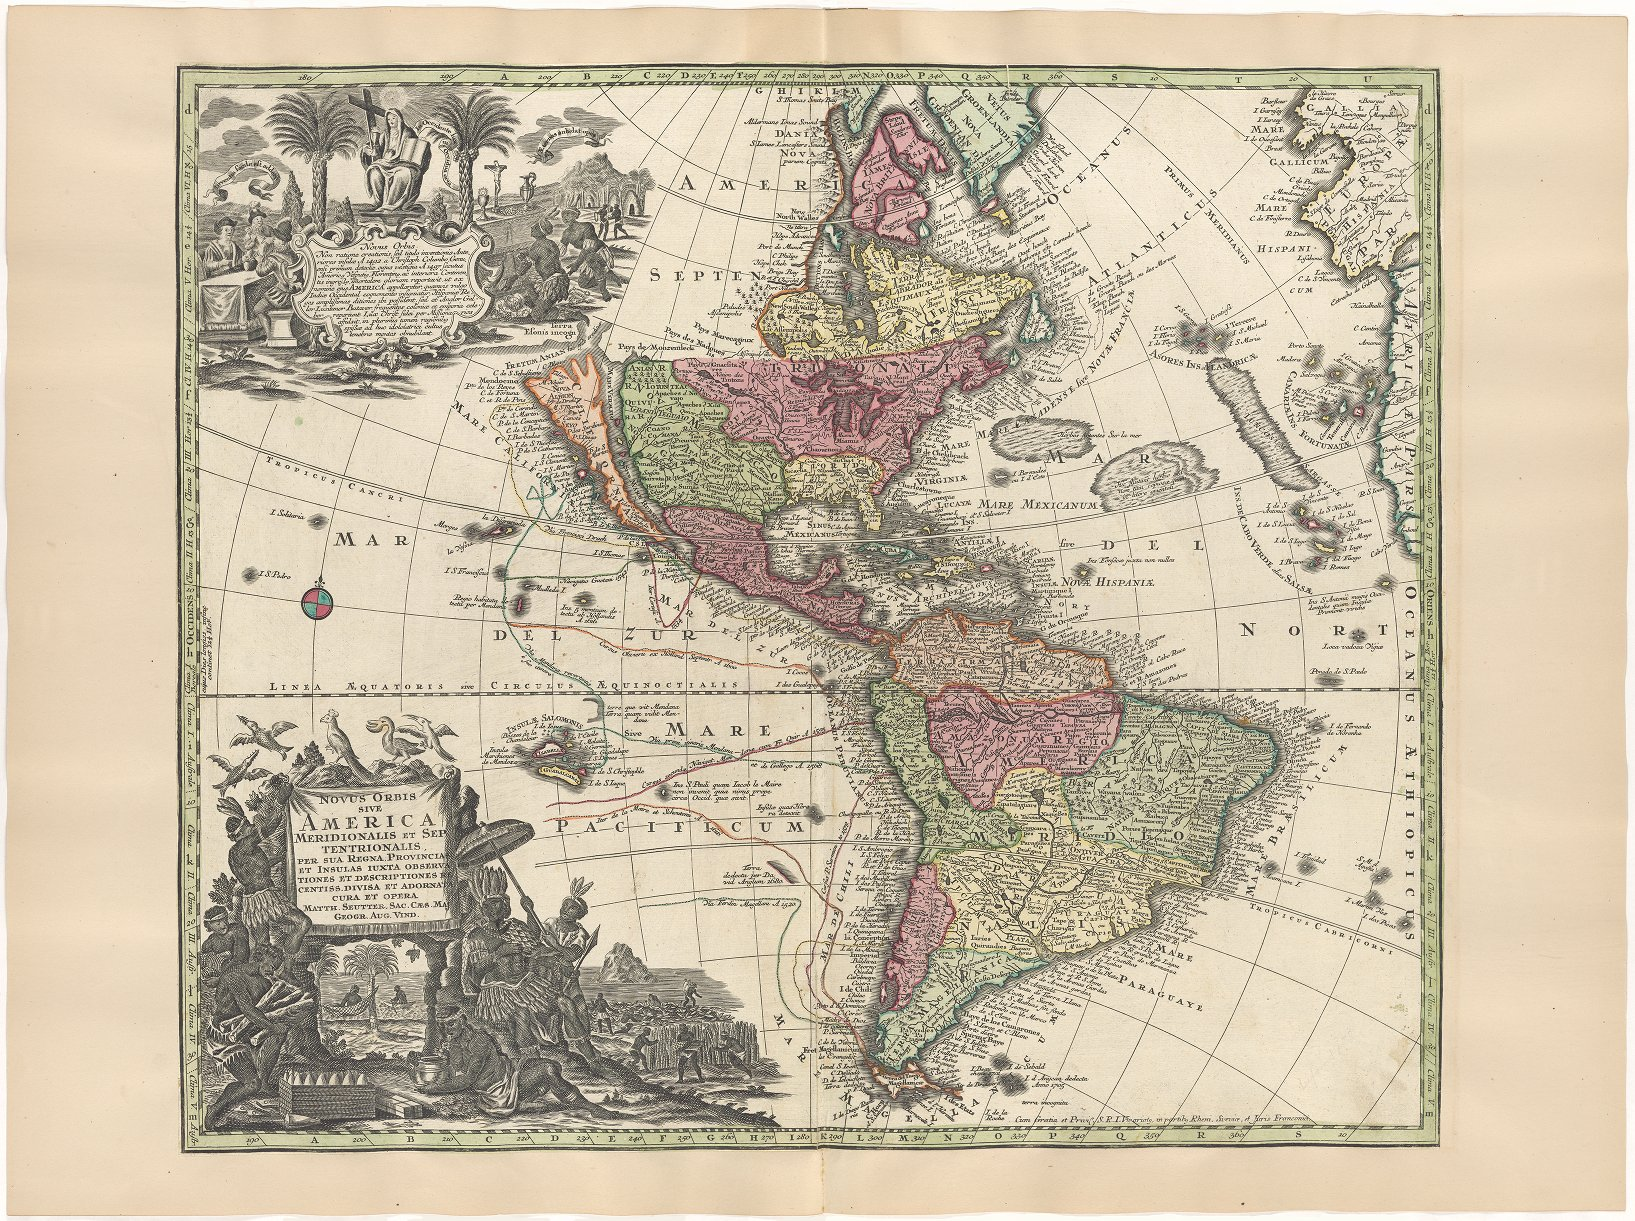 Old color map of north and south America, with a distorted view of North America.